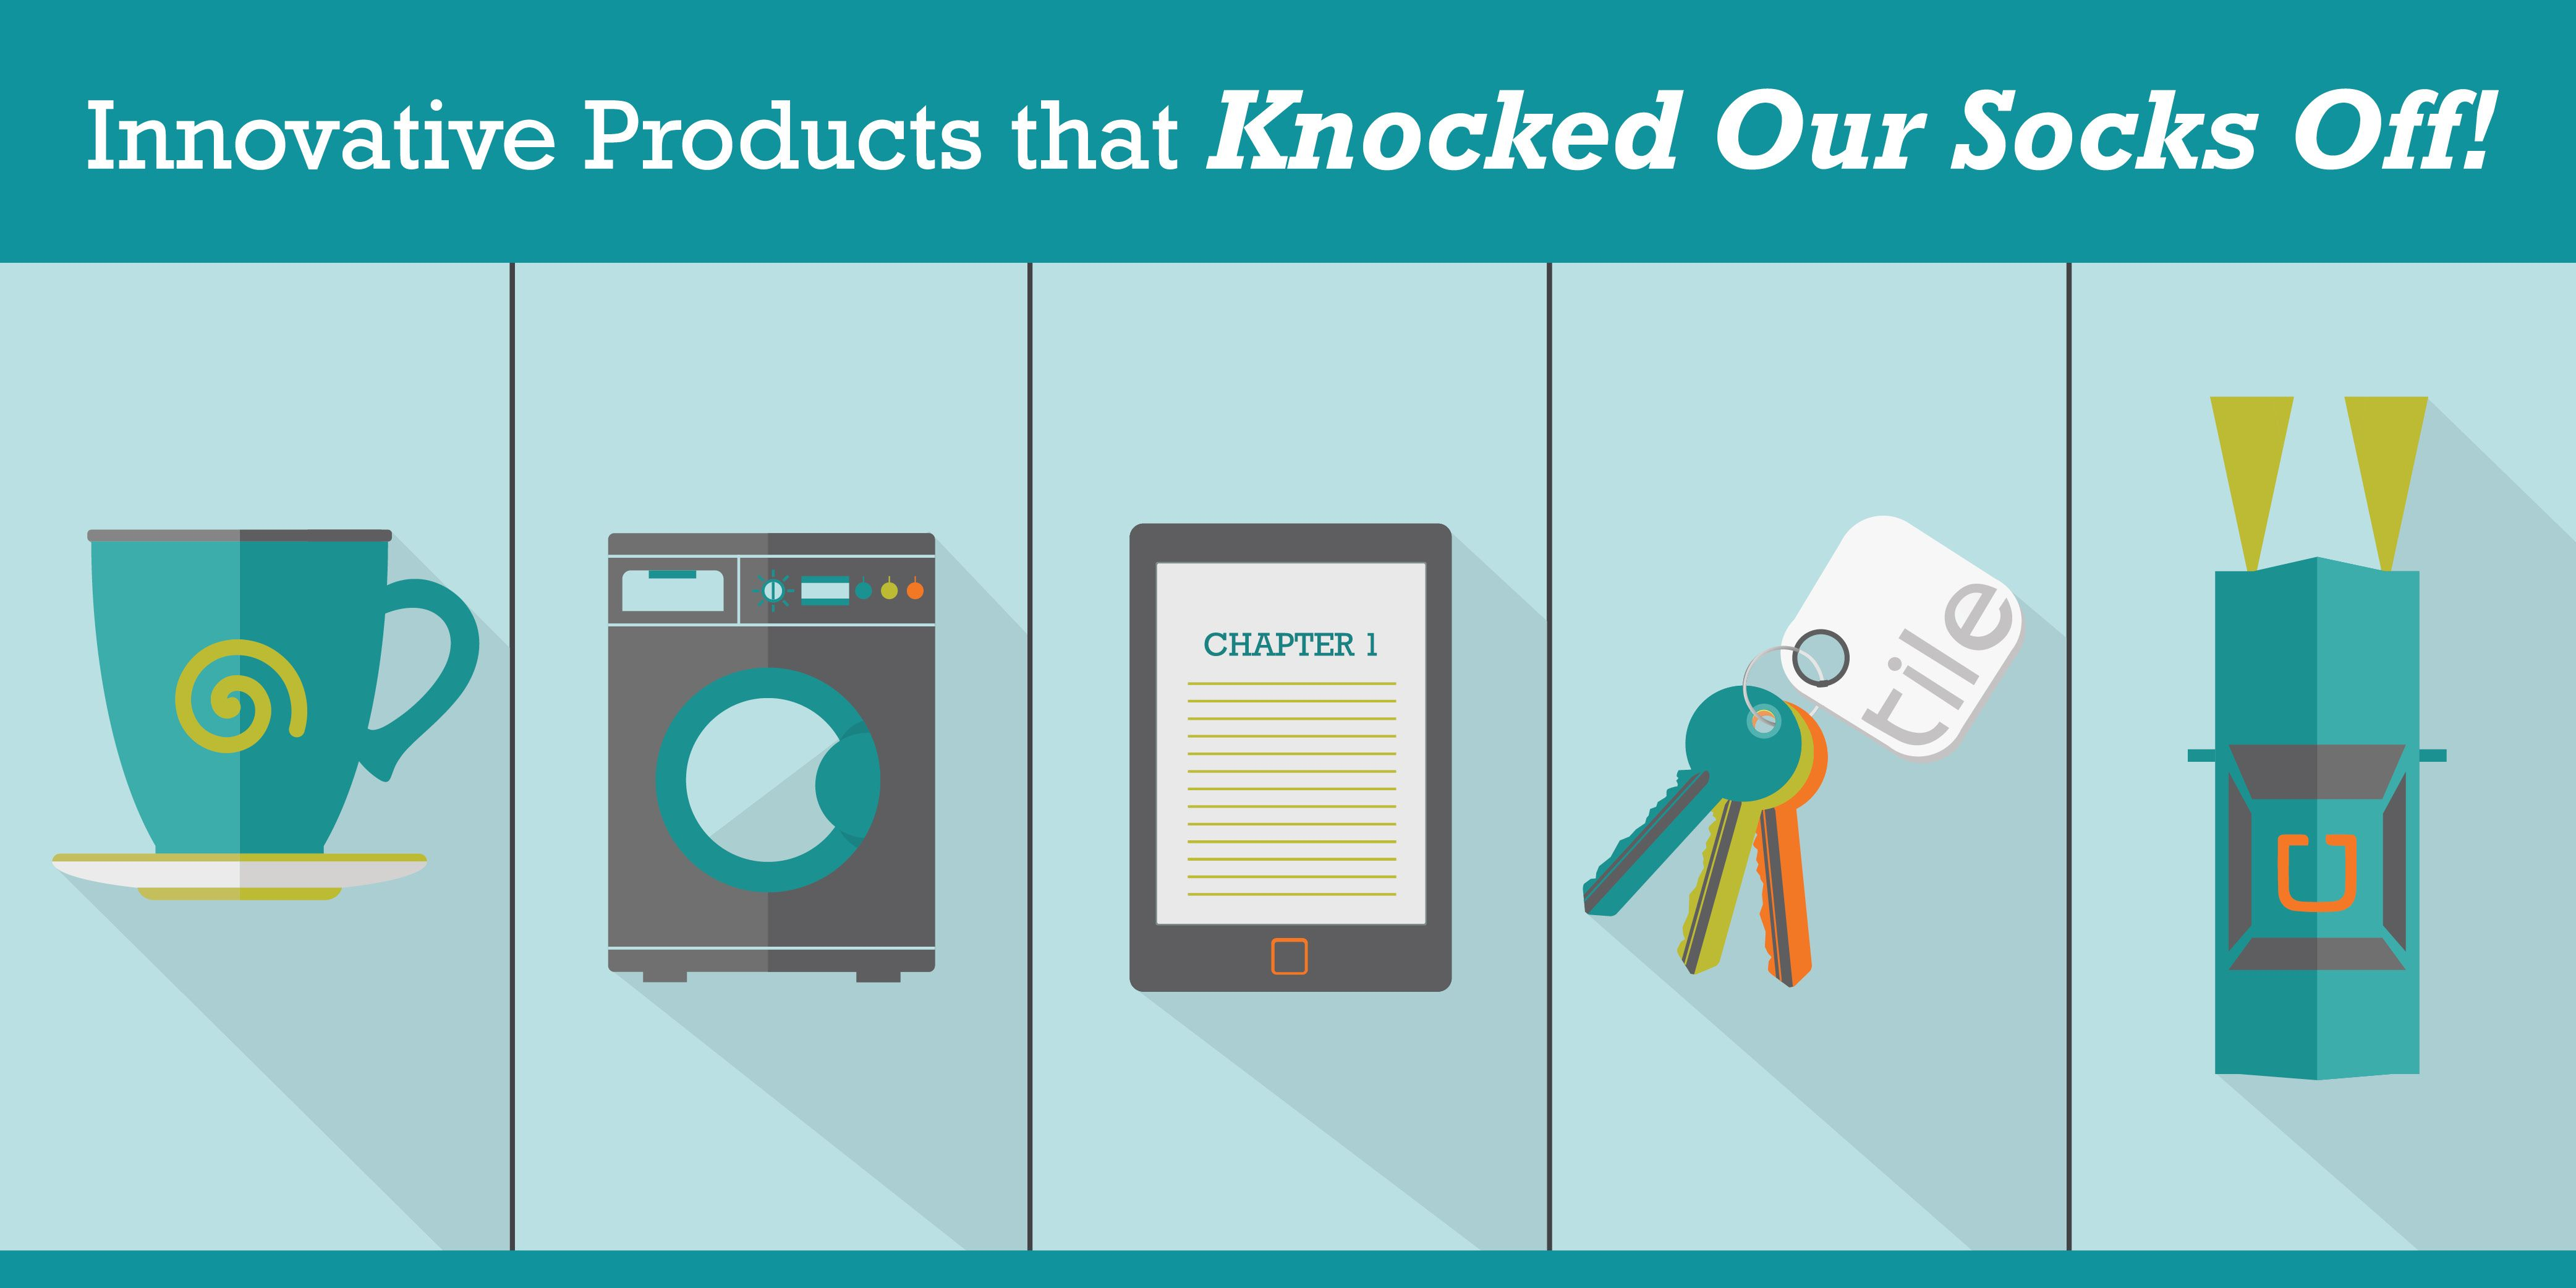 Innovative Products That Knocked Our Socks Off New Gadgets Innovation Knock Knock